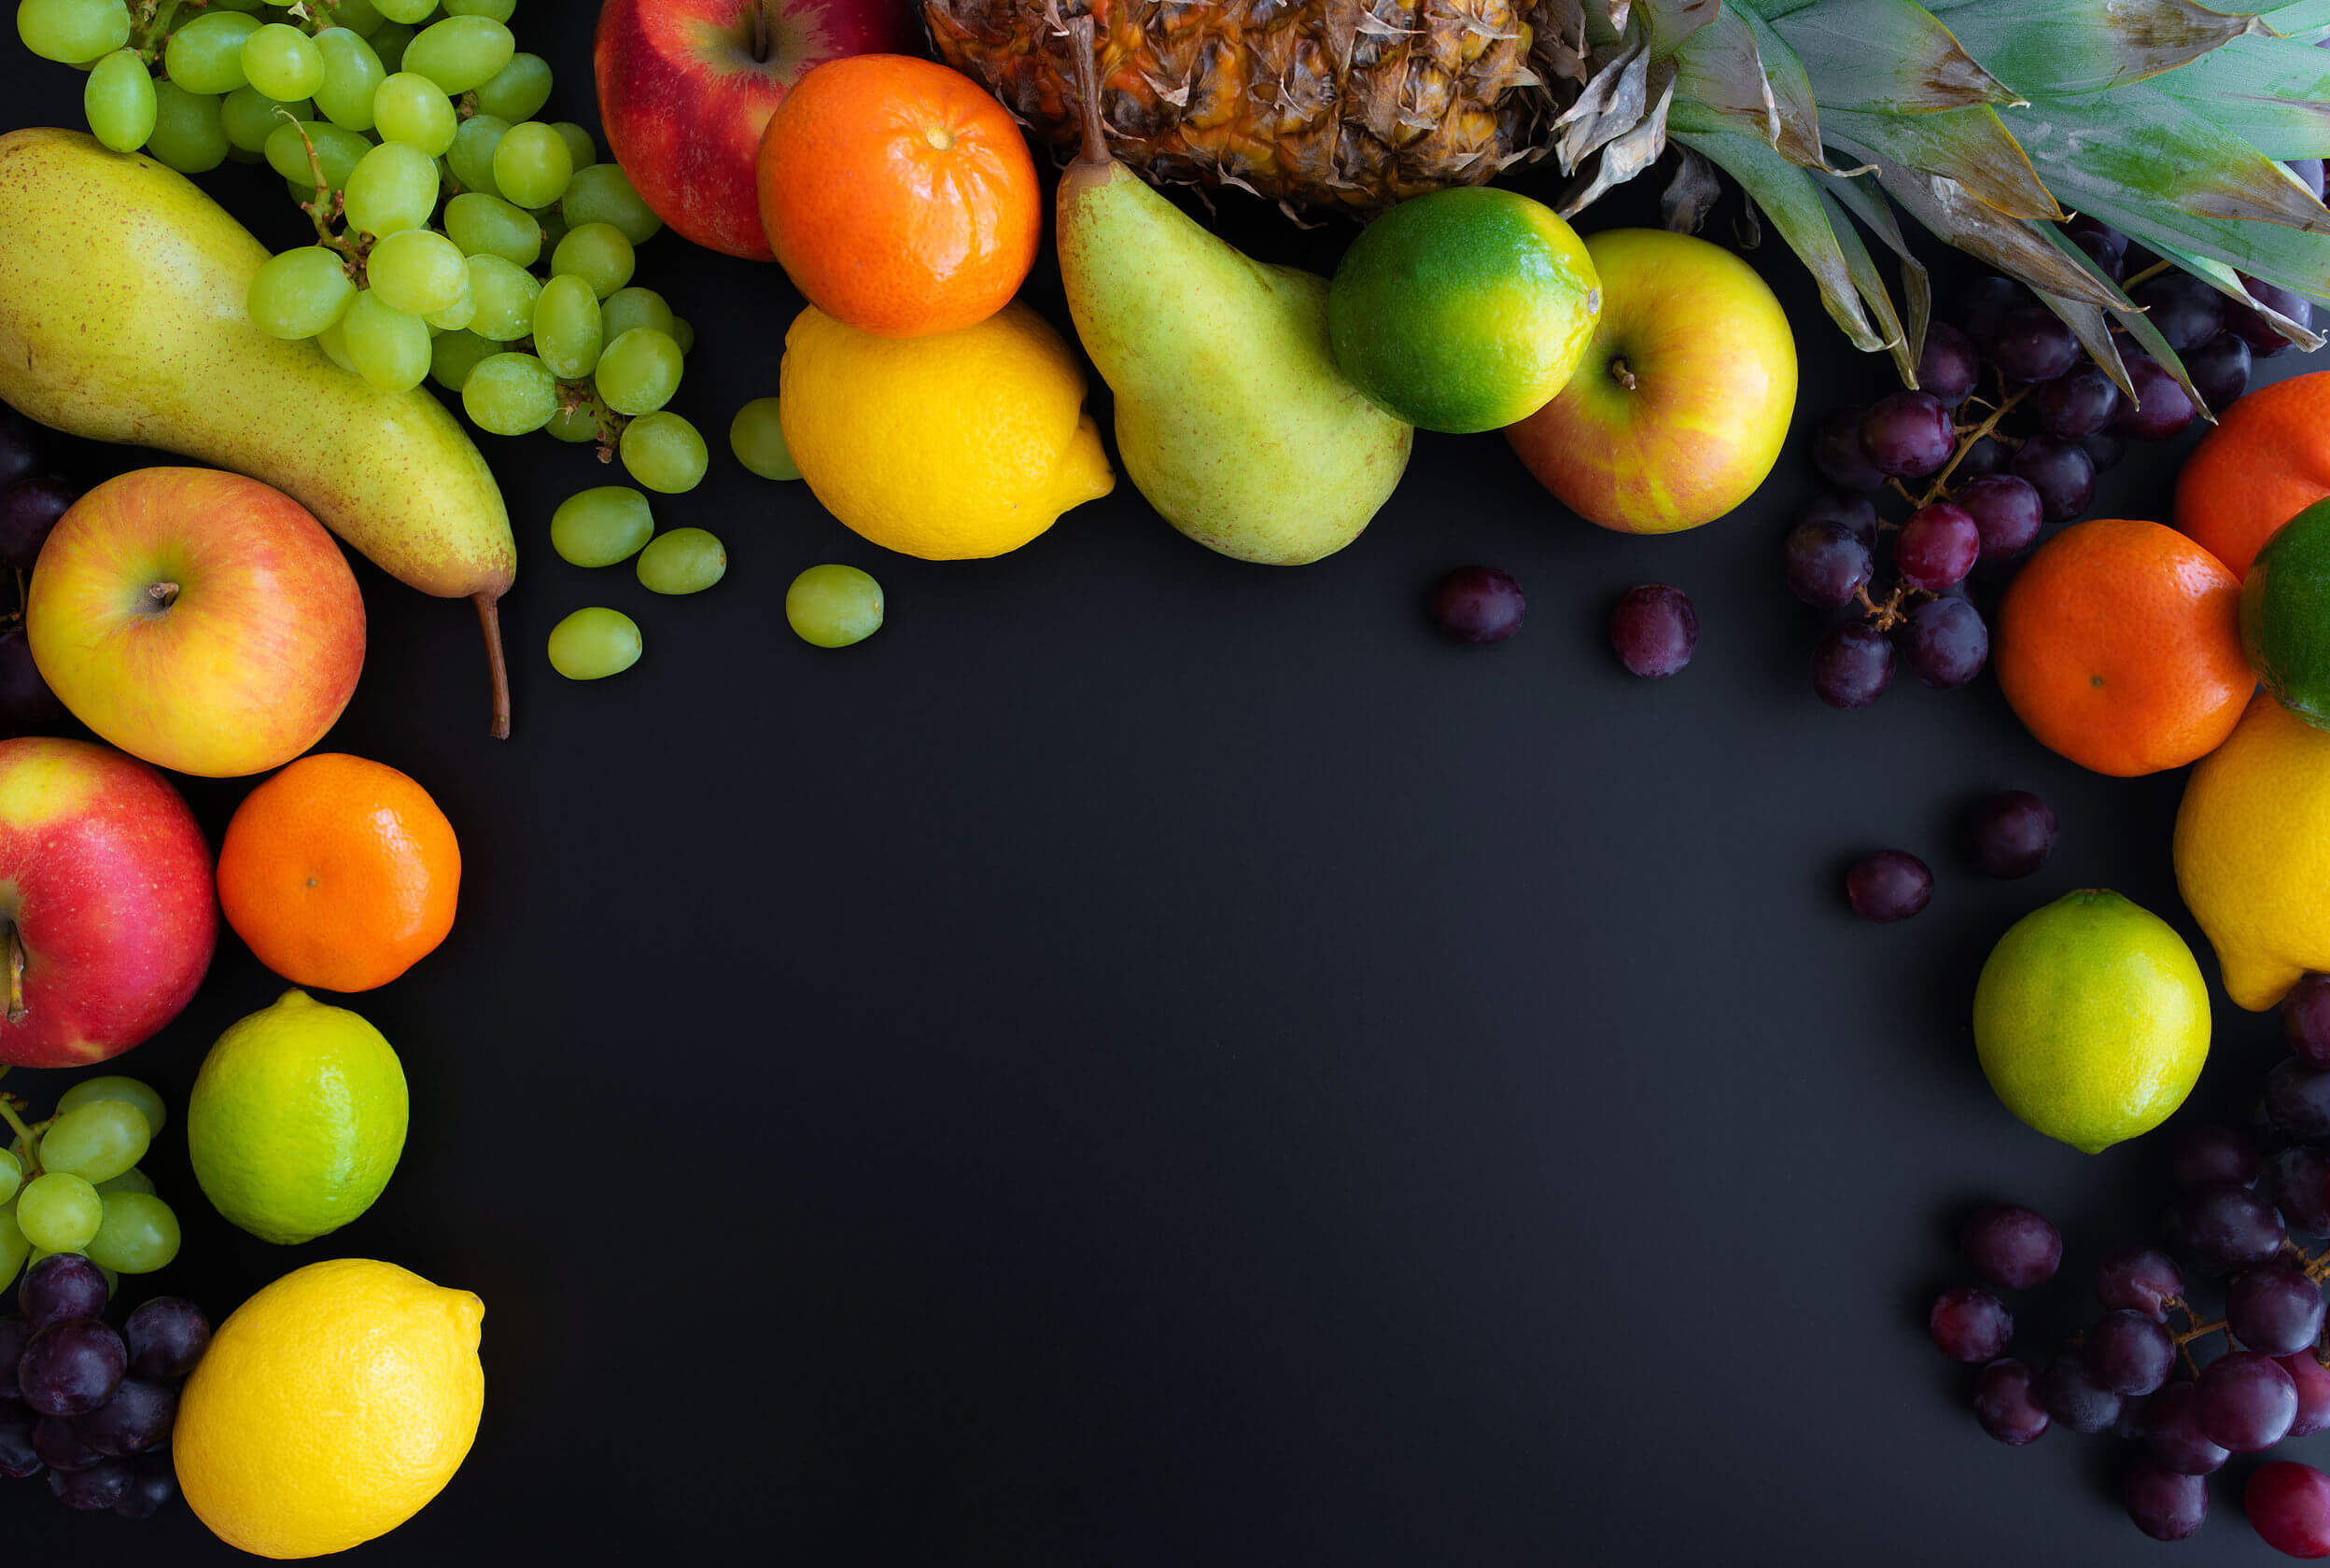 Fruits can be part of a balanced diet.